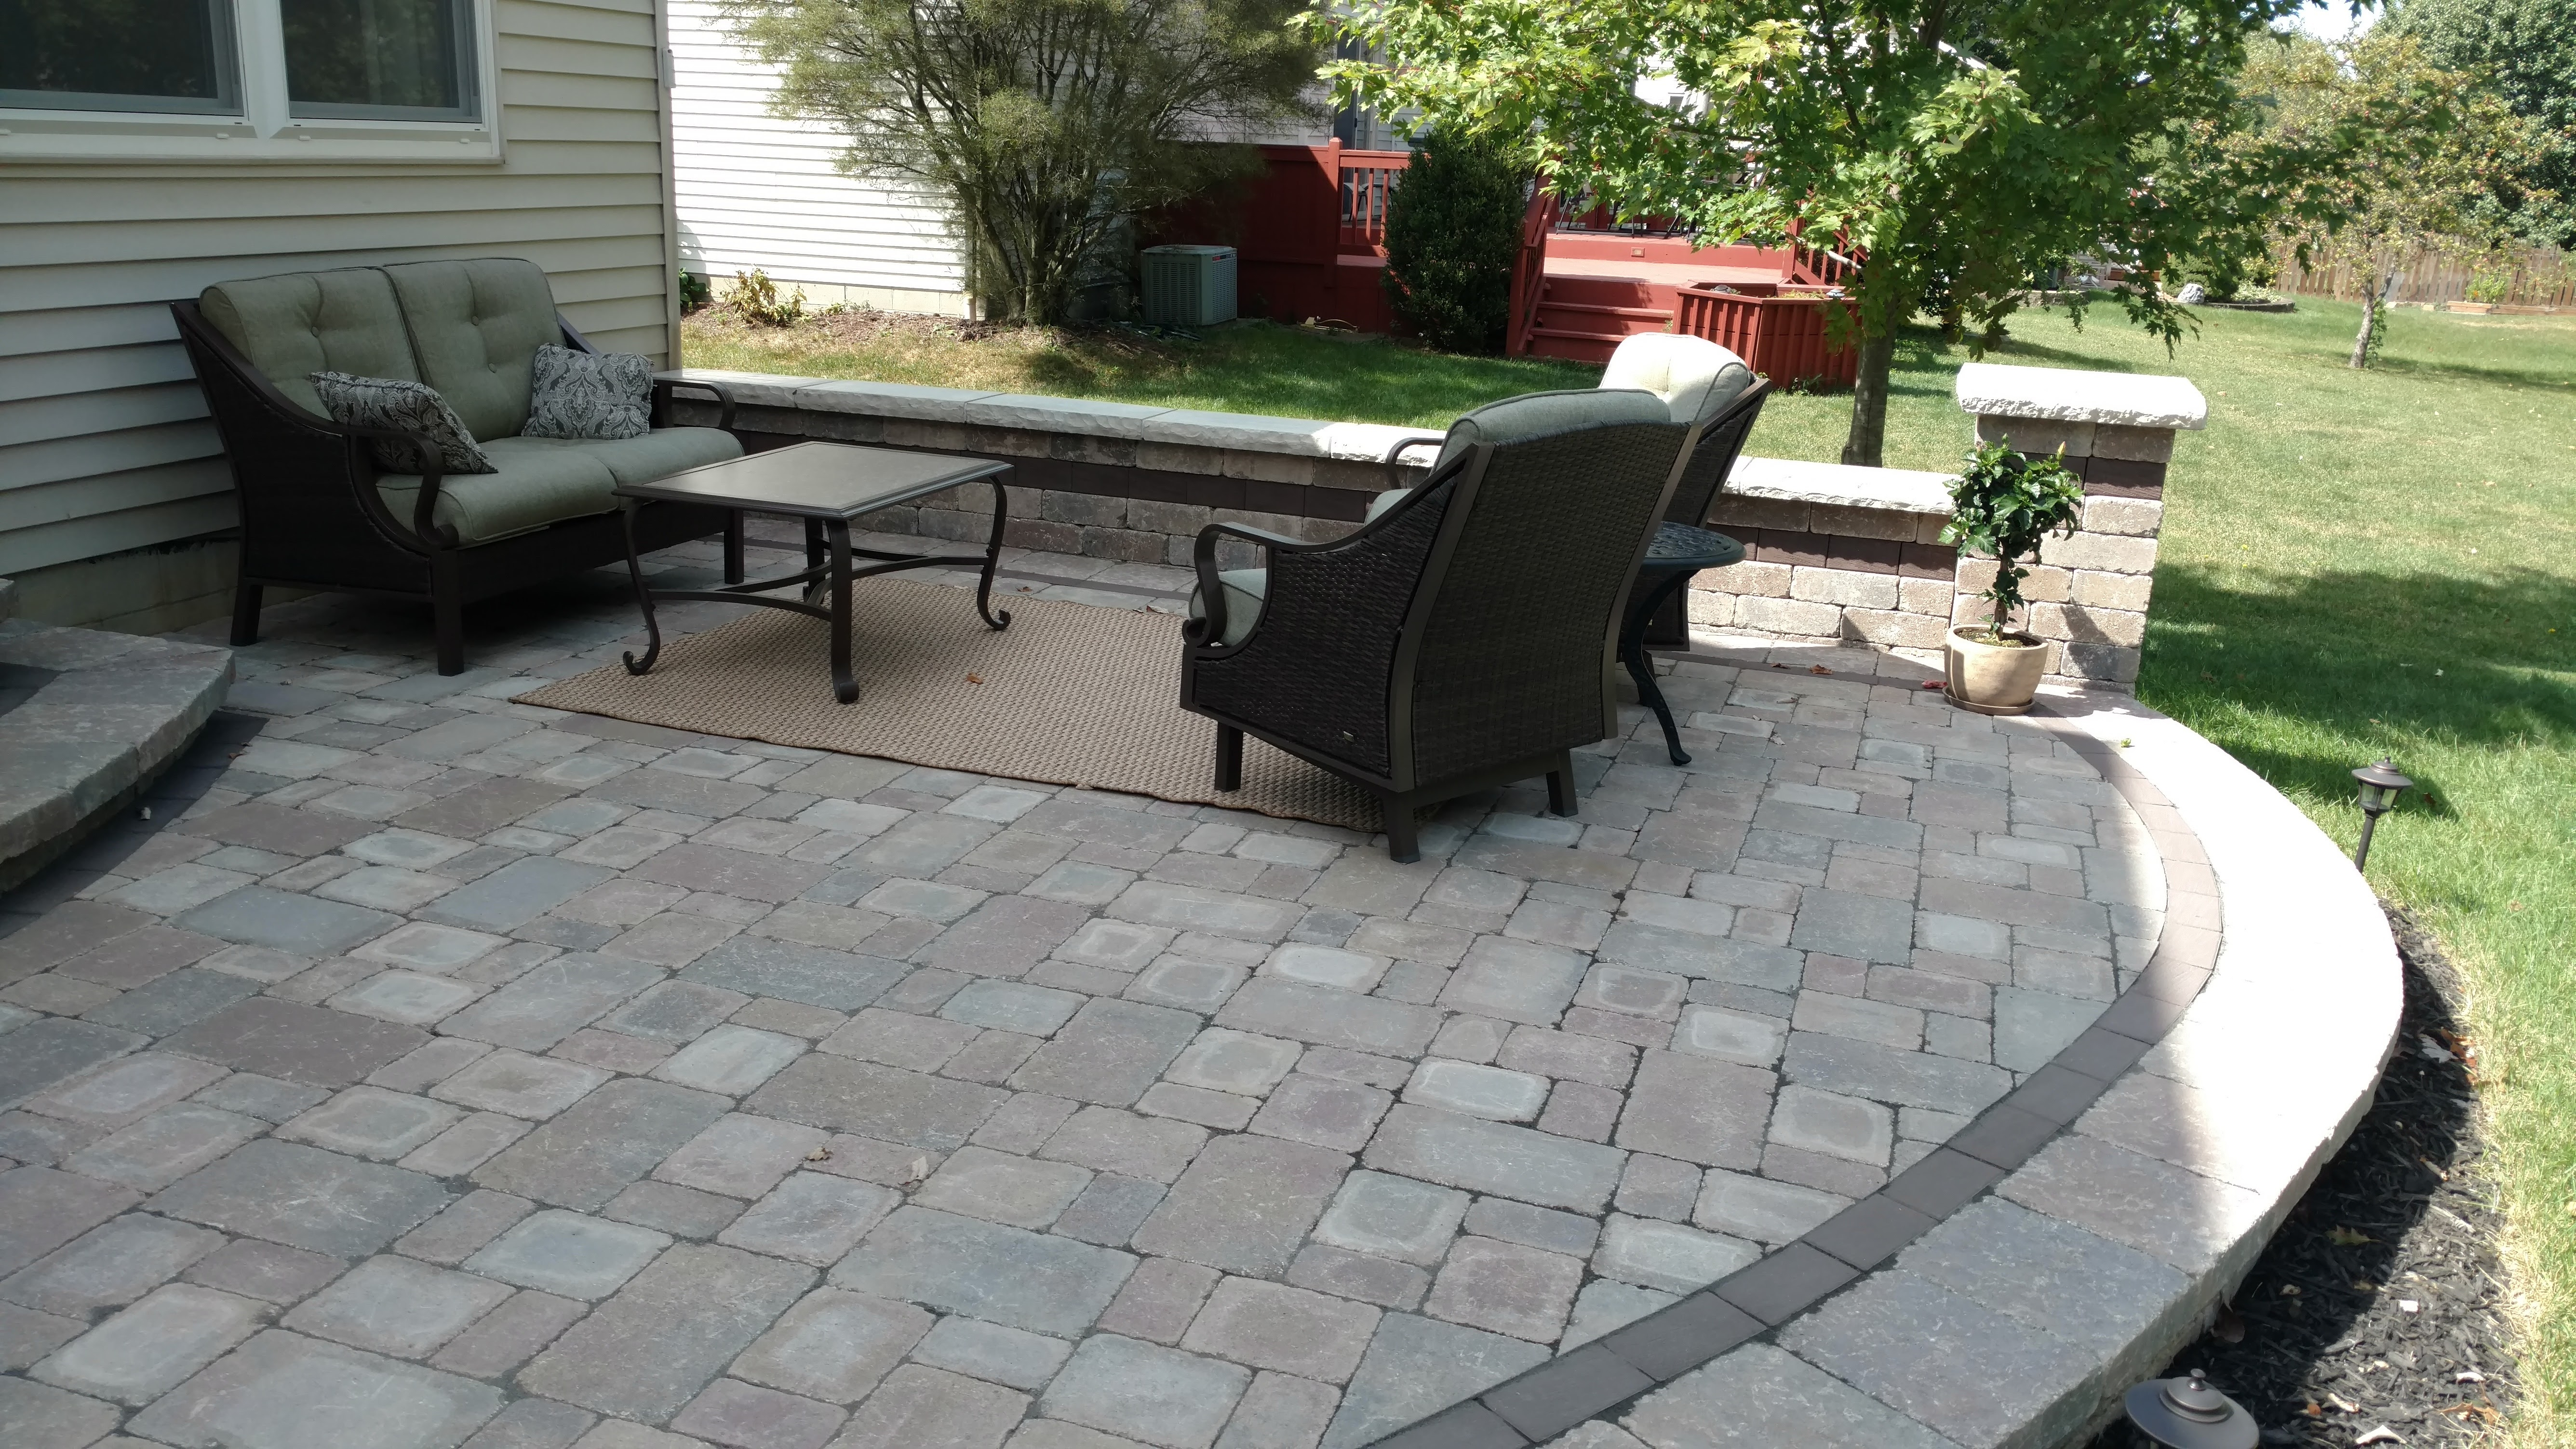 In Our Region, Pavers Are The Most Popular Choice For Homeowners  Considering A New Patio Or Hardscape. Unilock Pavers, In Particular, Are A  Favorite ...